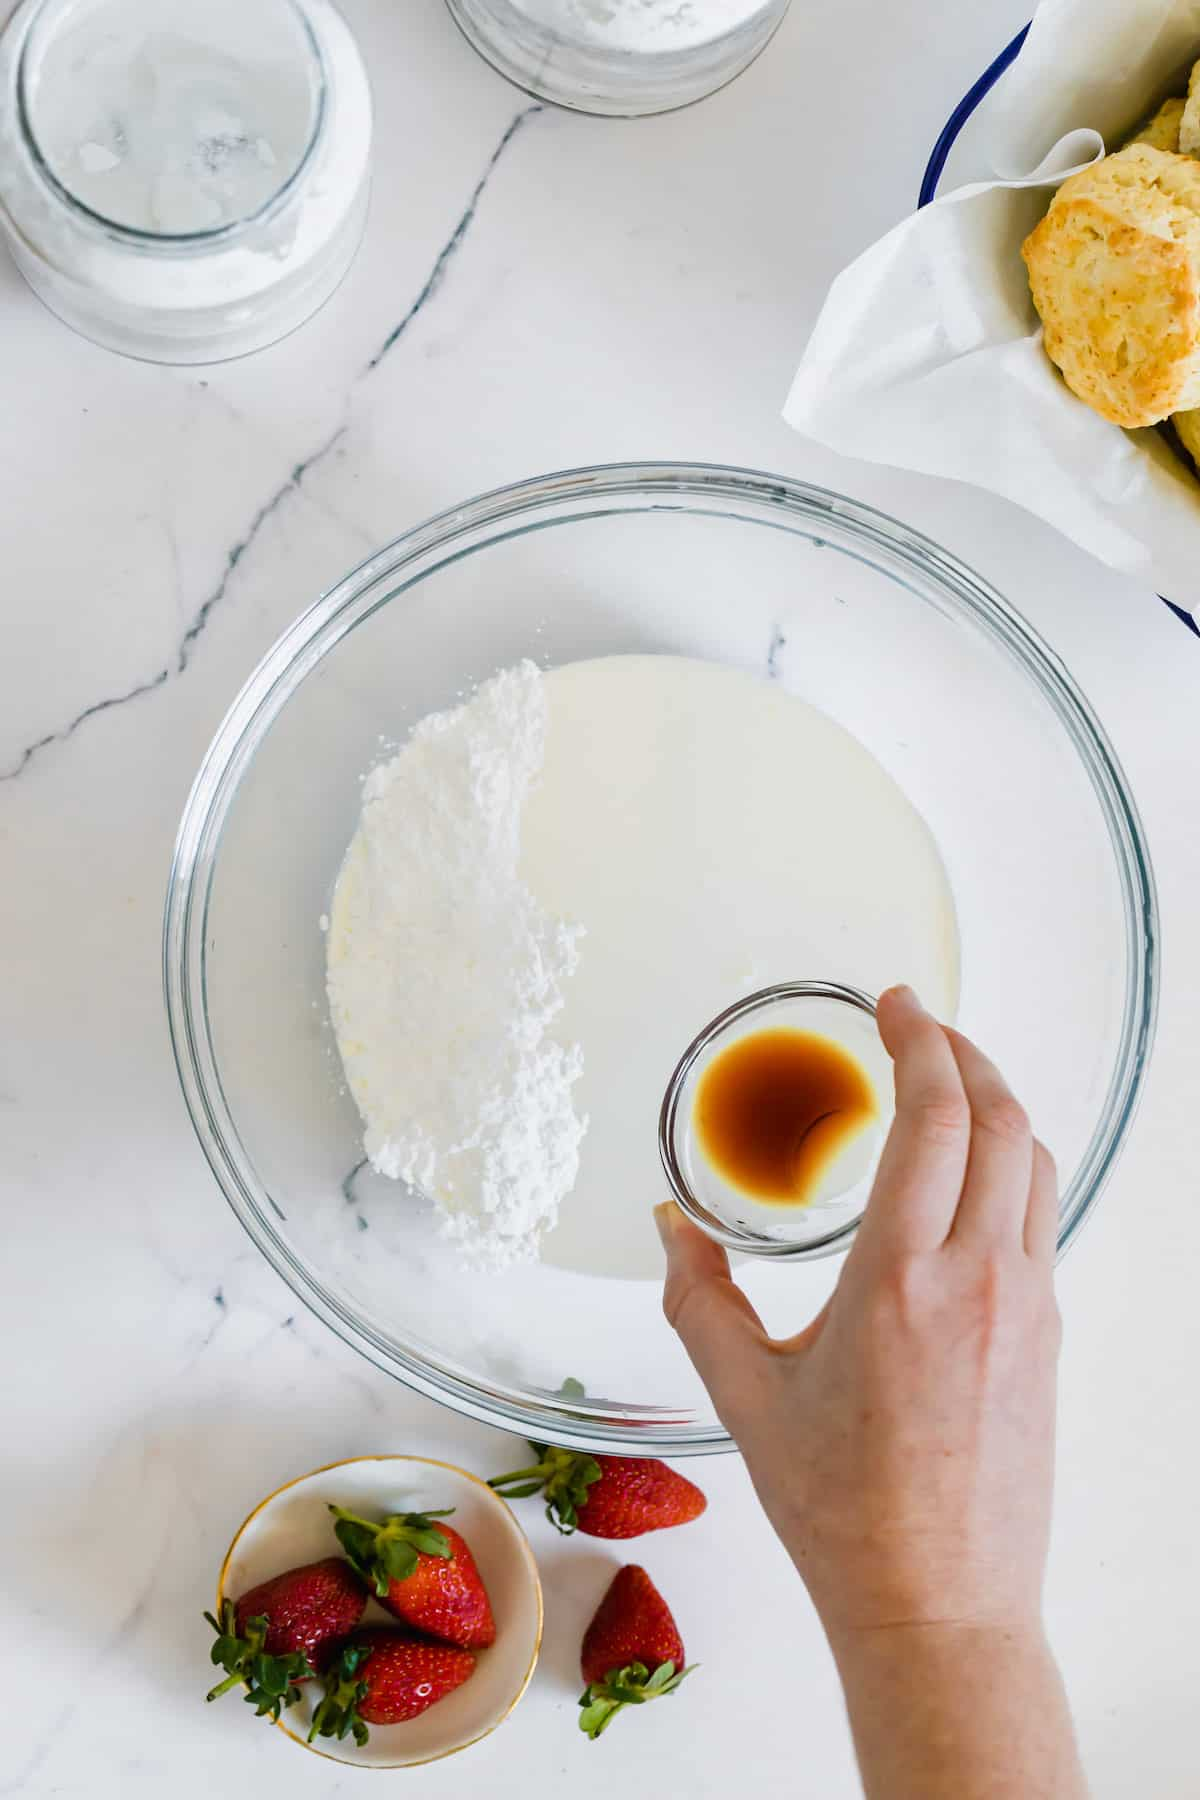 Vanilla Extract Being Added to a Bowl of Heavy Cream and Powdered Sugar